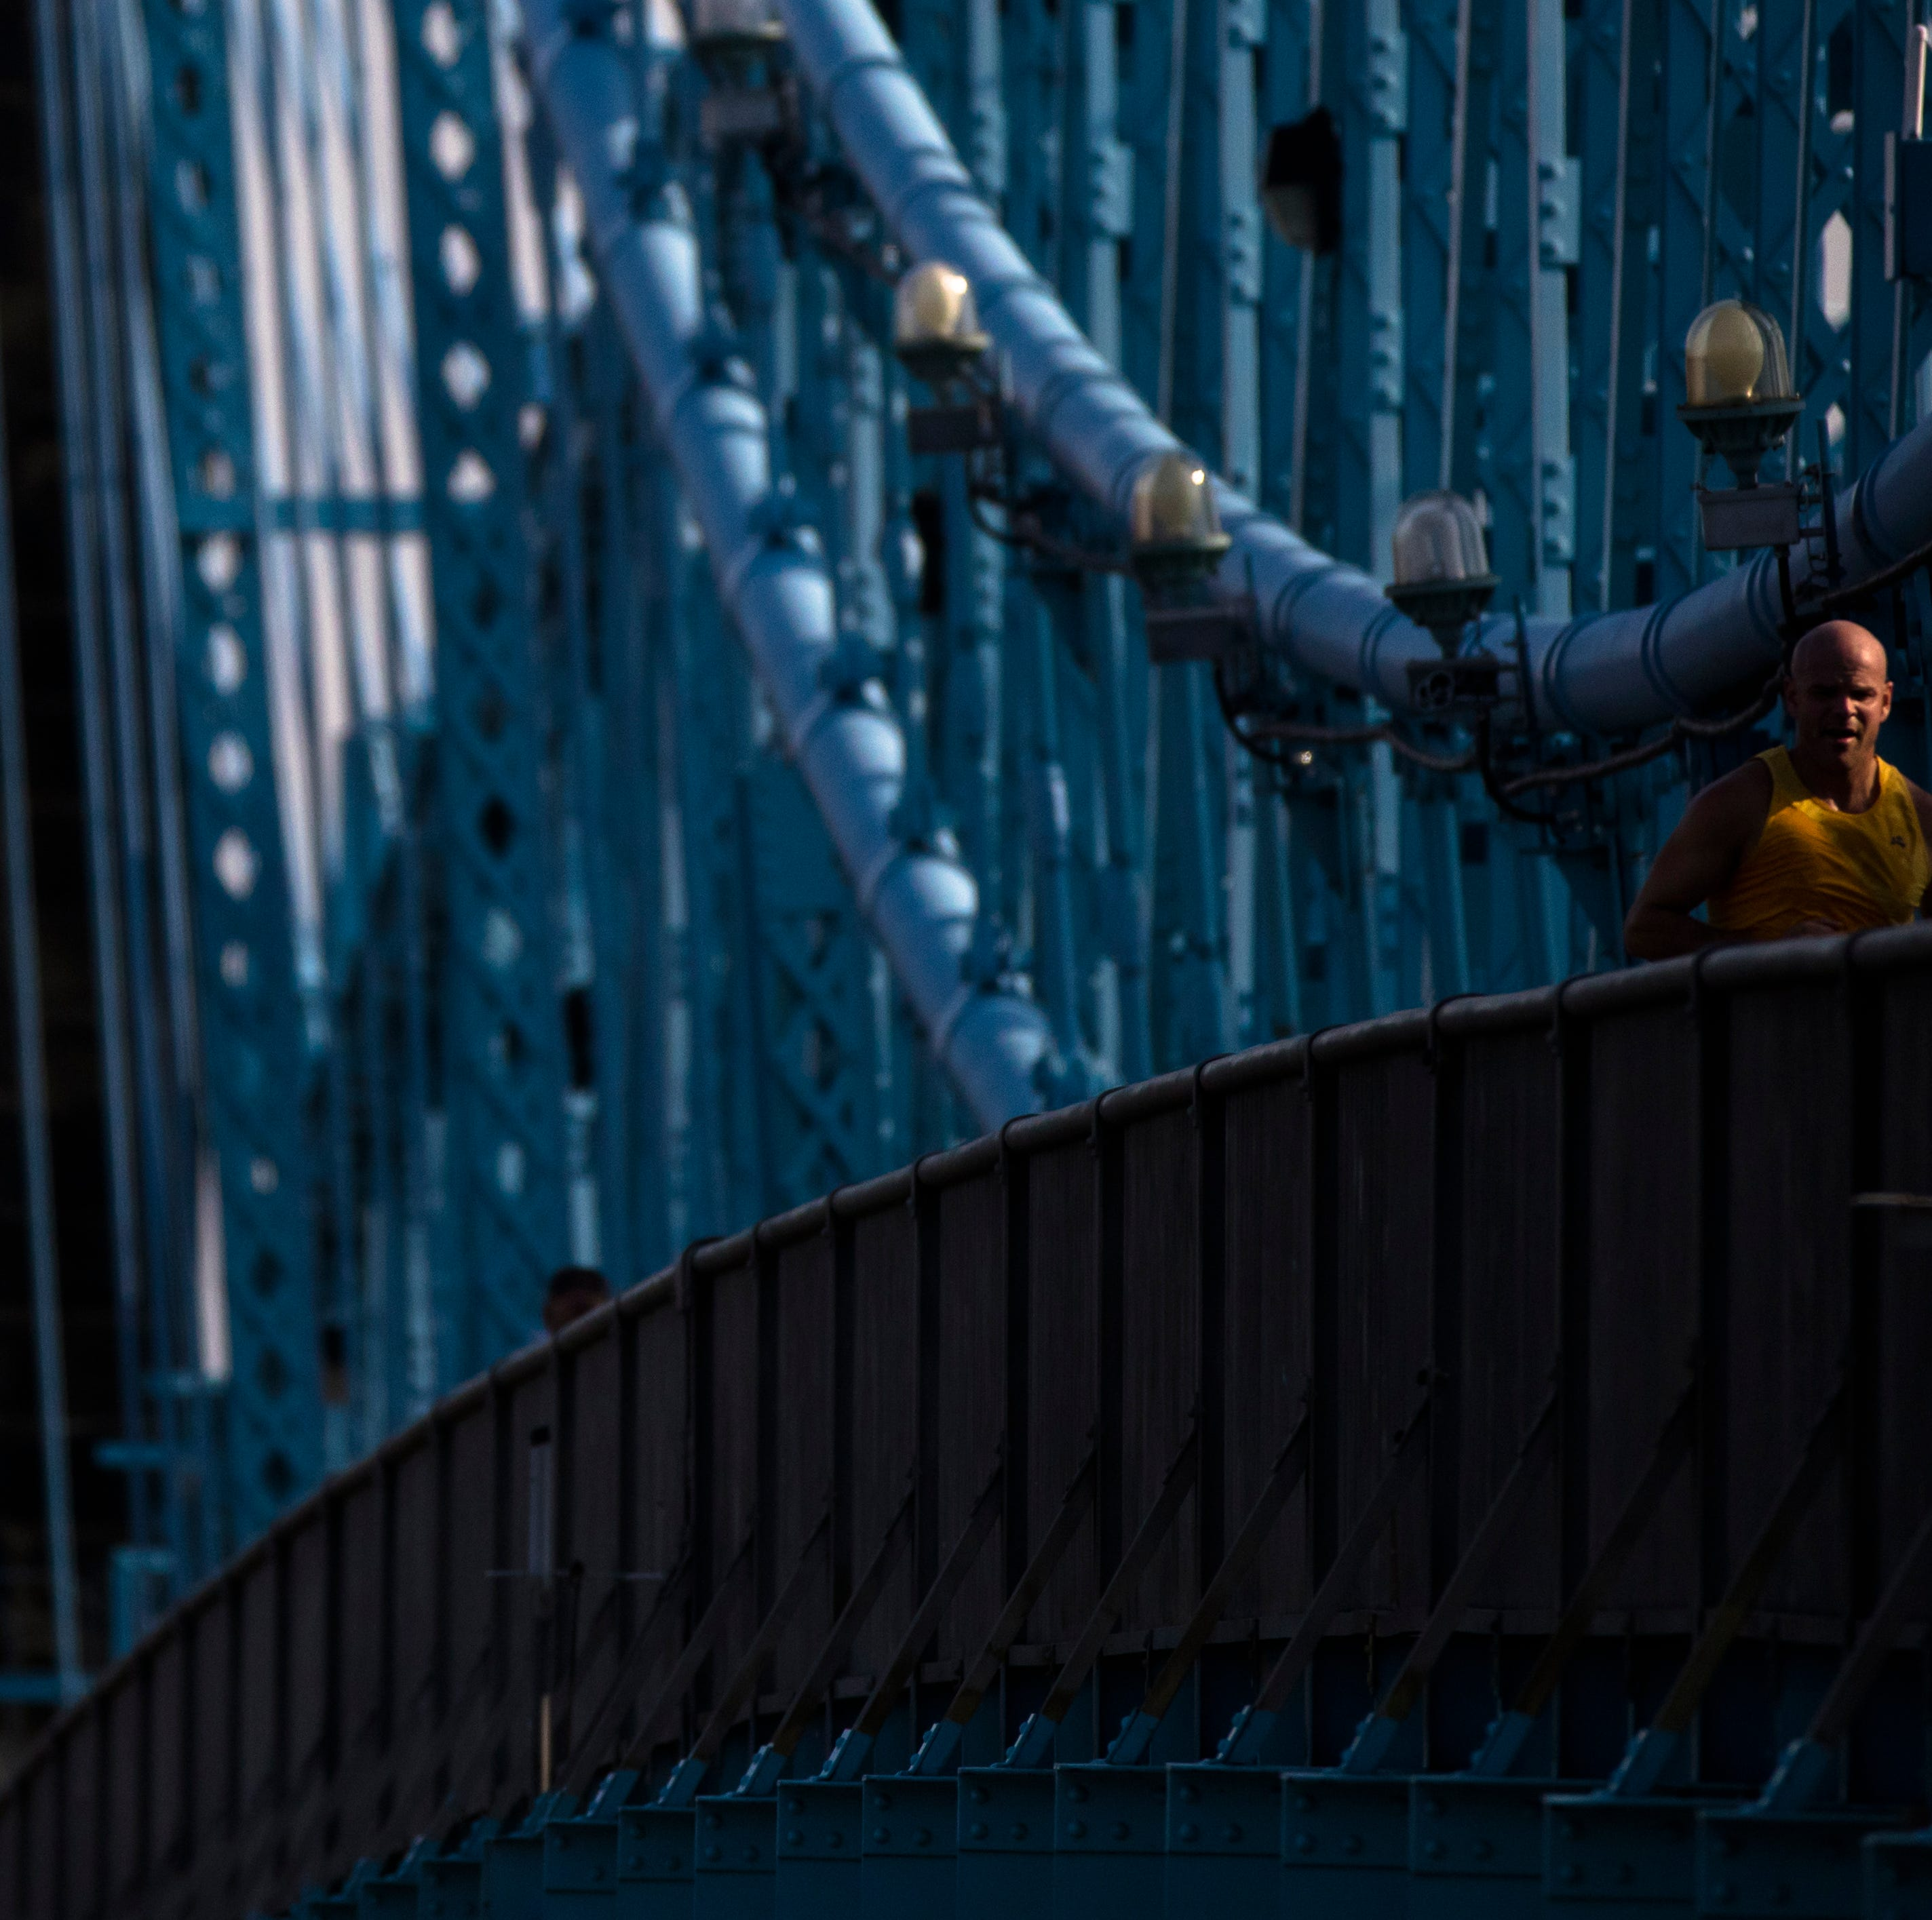 The John A. Roebling Bridge is not anywhere close to being reopened.